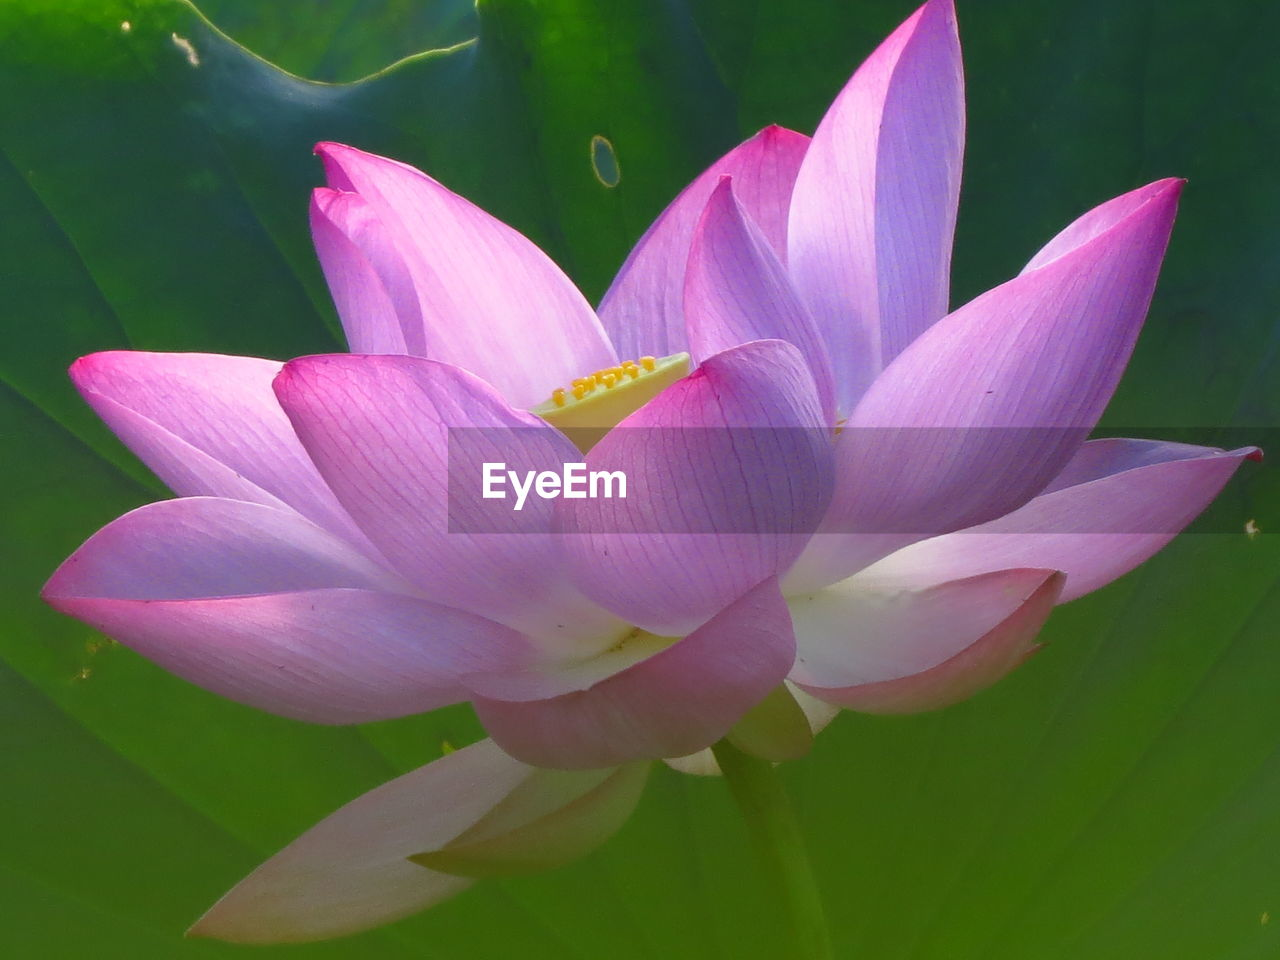 flower, flowering plant, beauty in nature, plant, vulnerability, fragility, petal, freshness, close-up, inflorescence, growth, flower head, water lily, pink color, nature, lily, lotus water lily, leaf, no people, purple, pollen